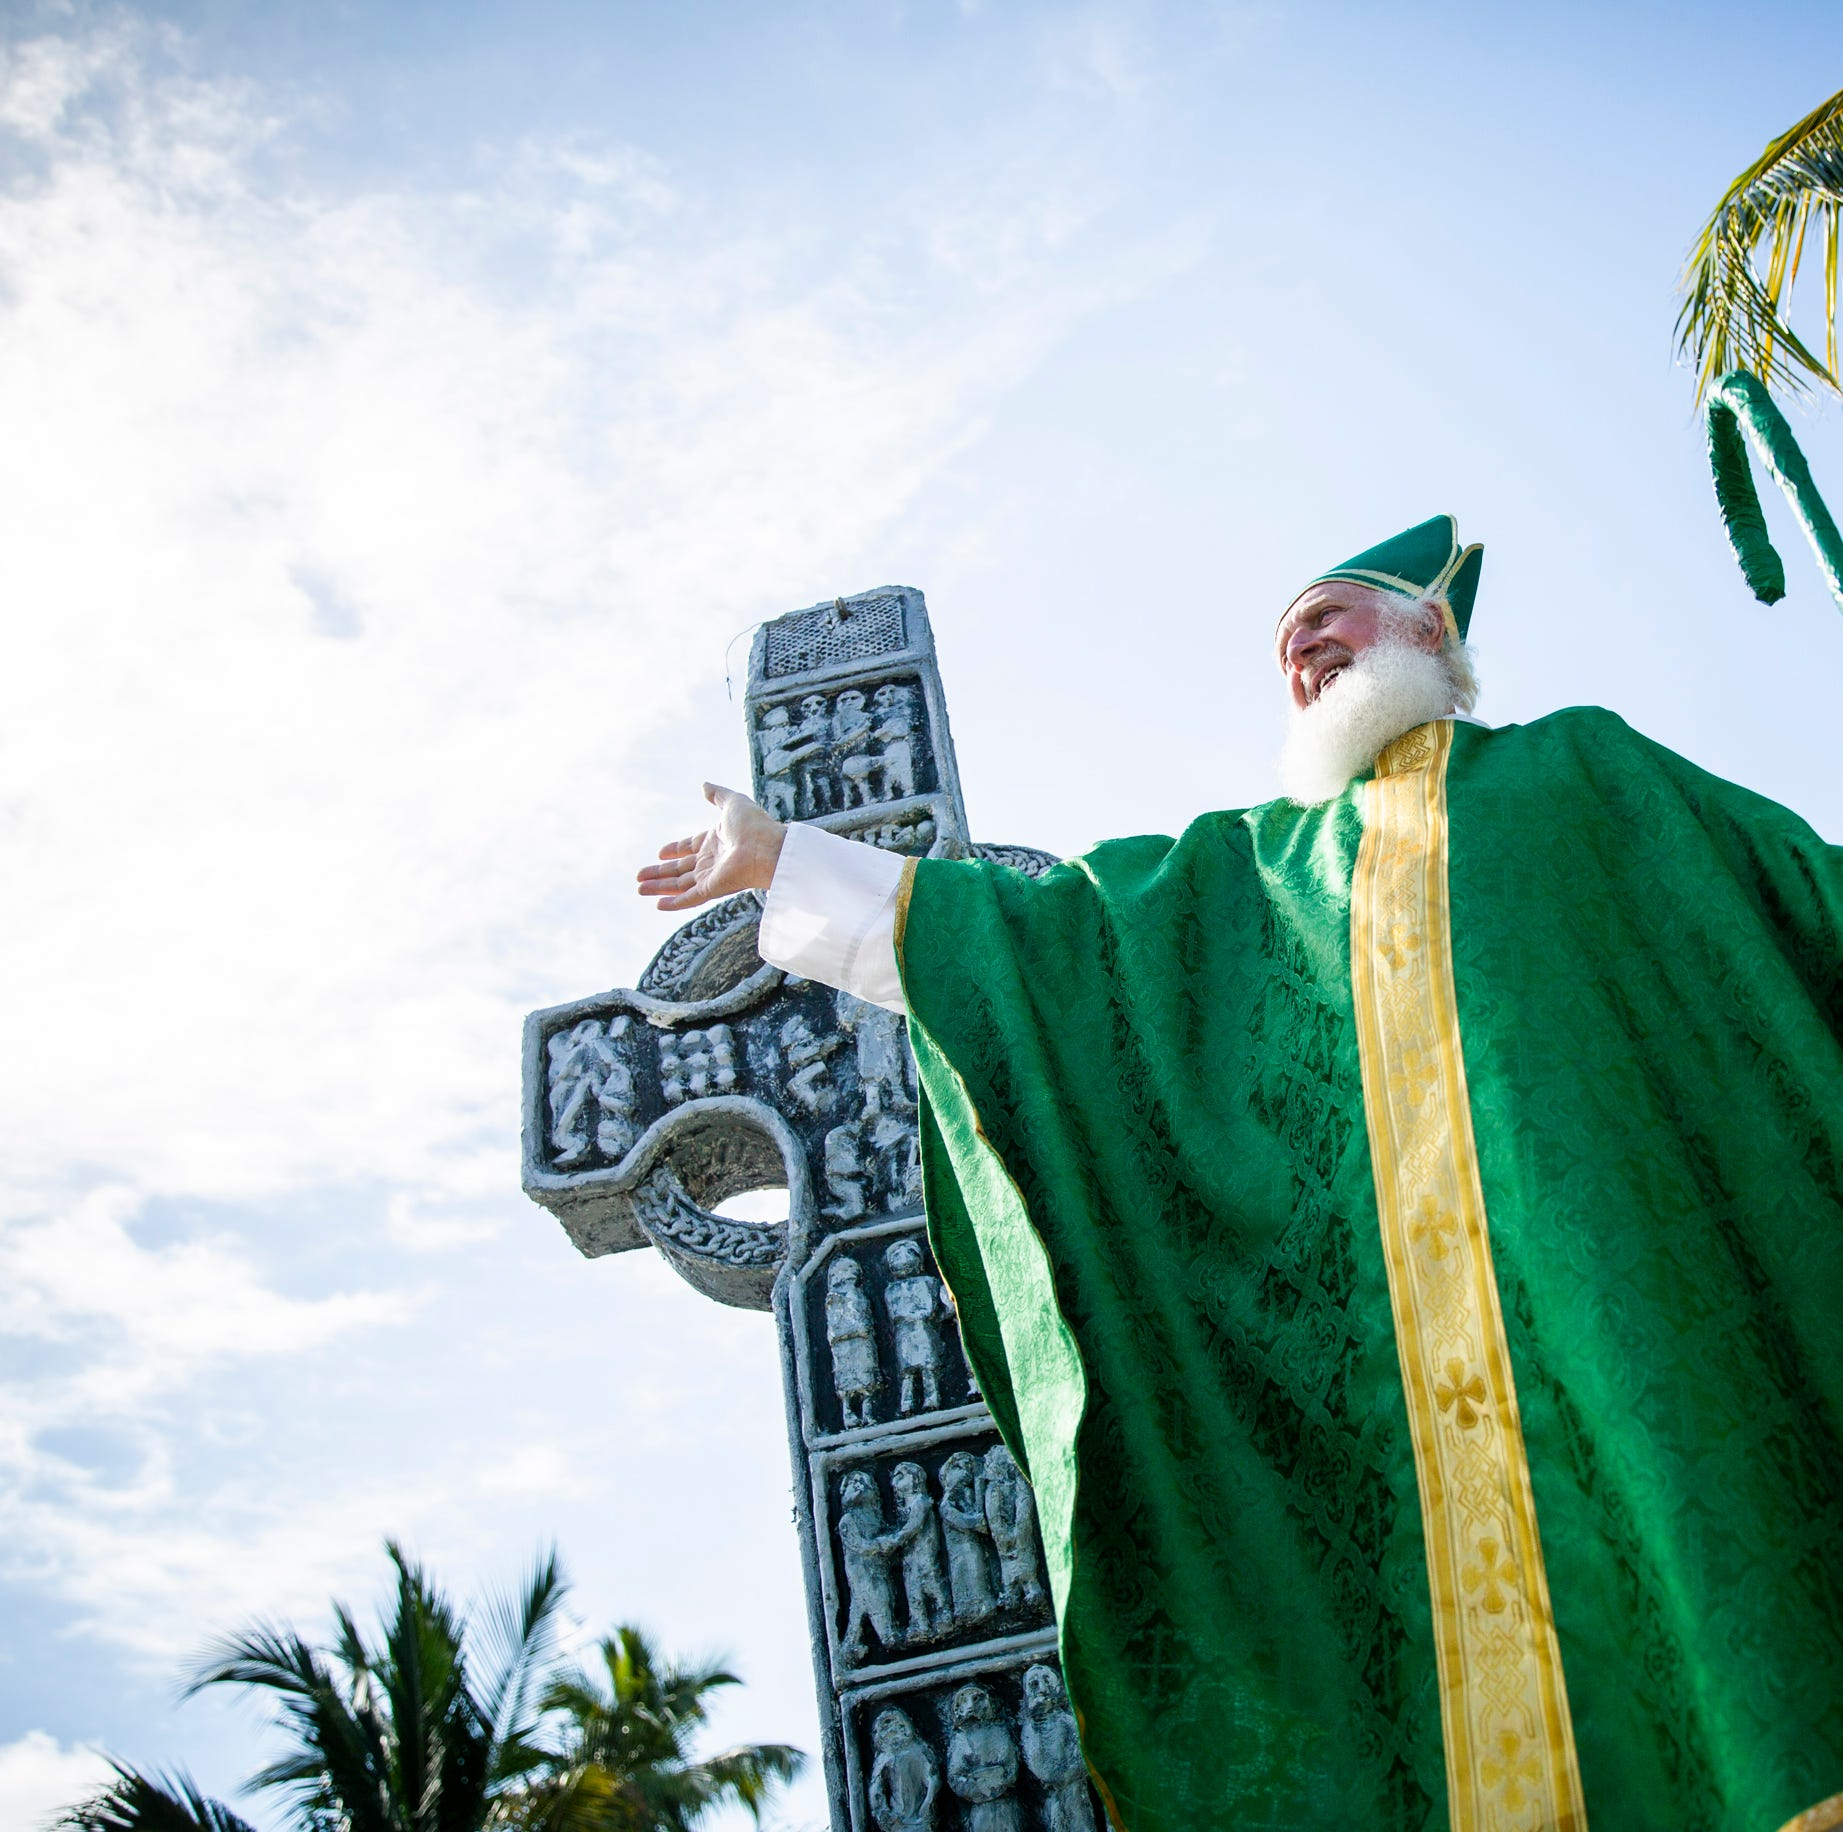 Naples St. Patrick's Day Parade draws crowd estimated at 40,000